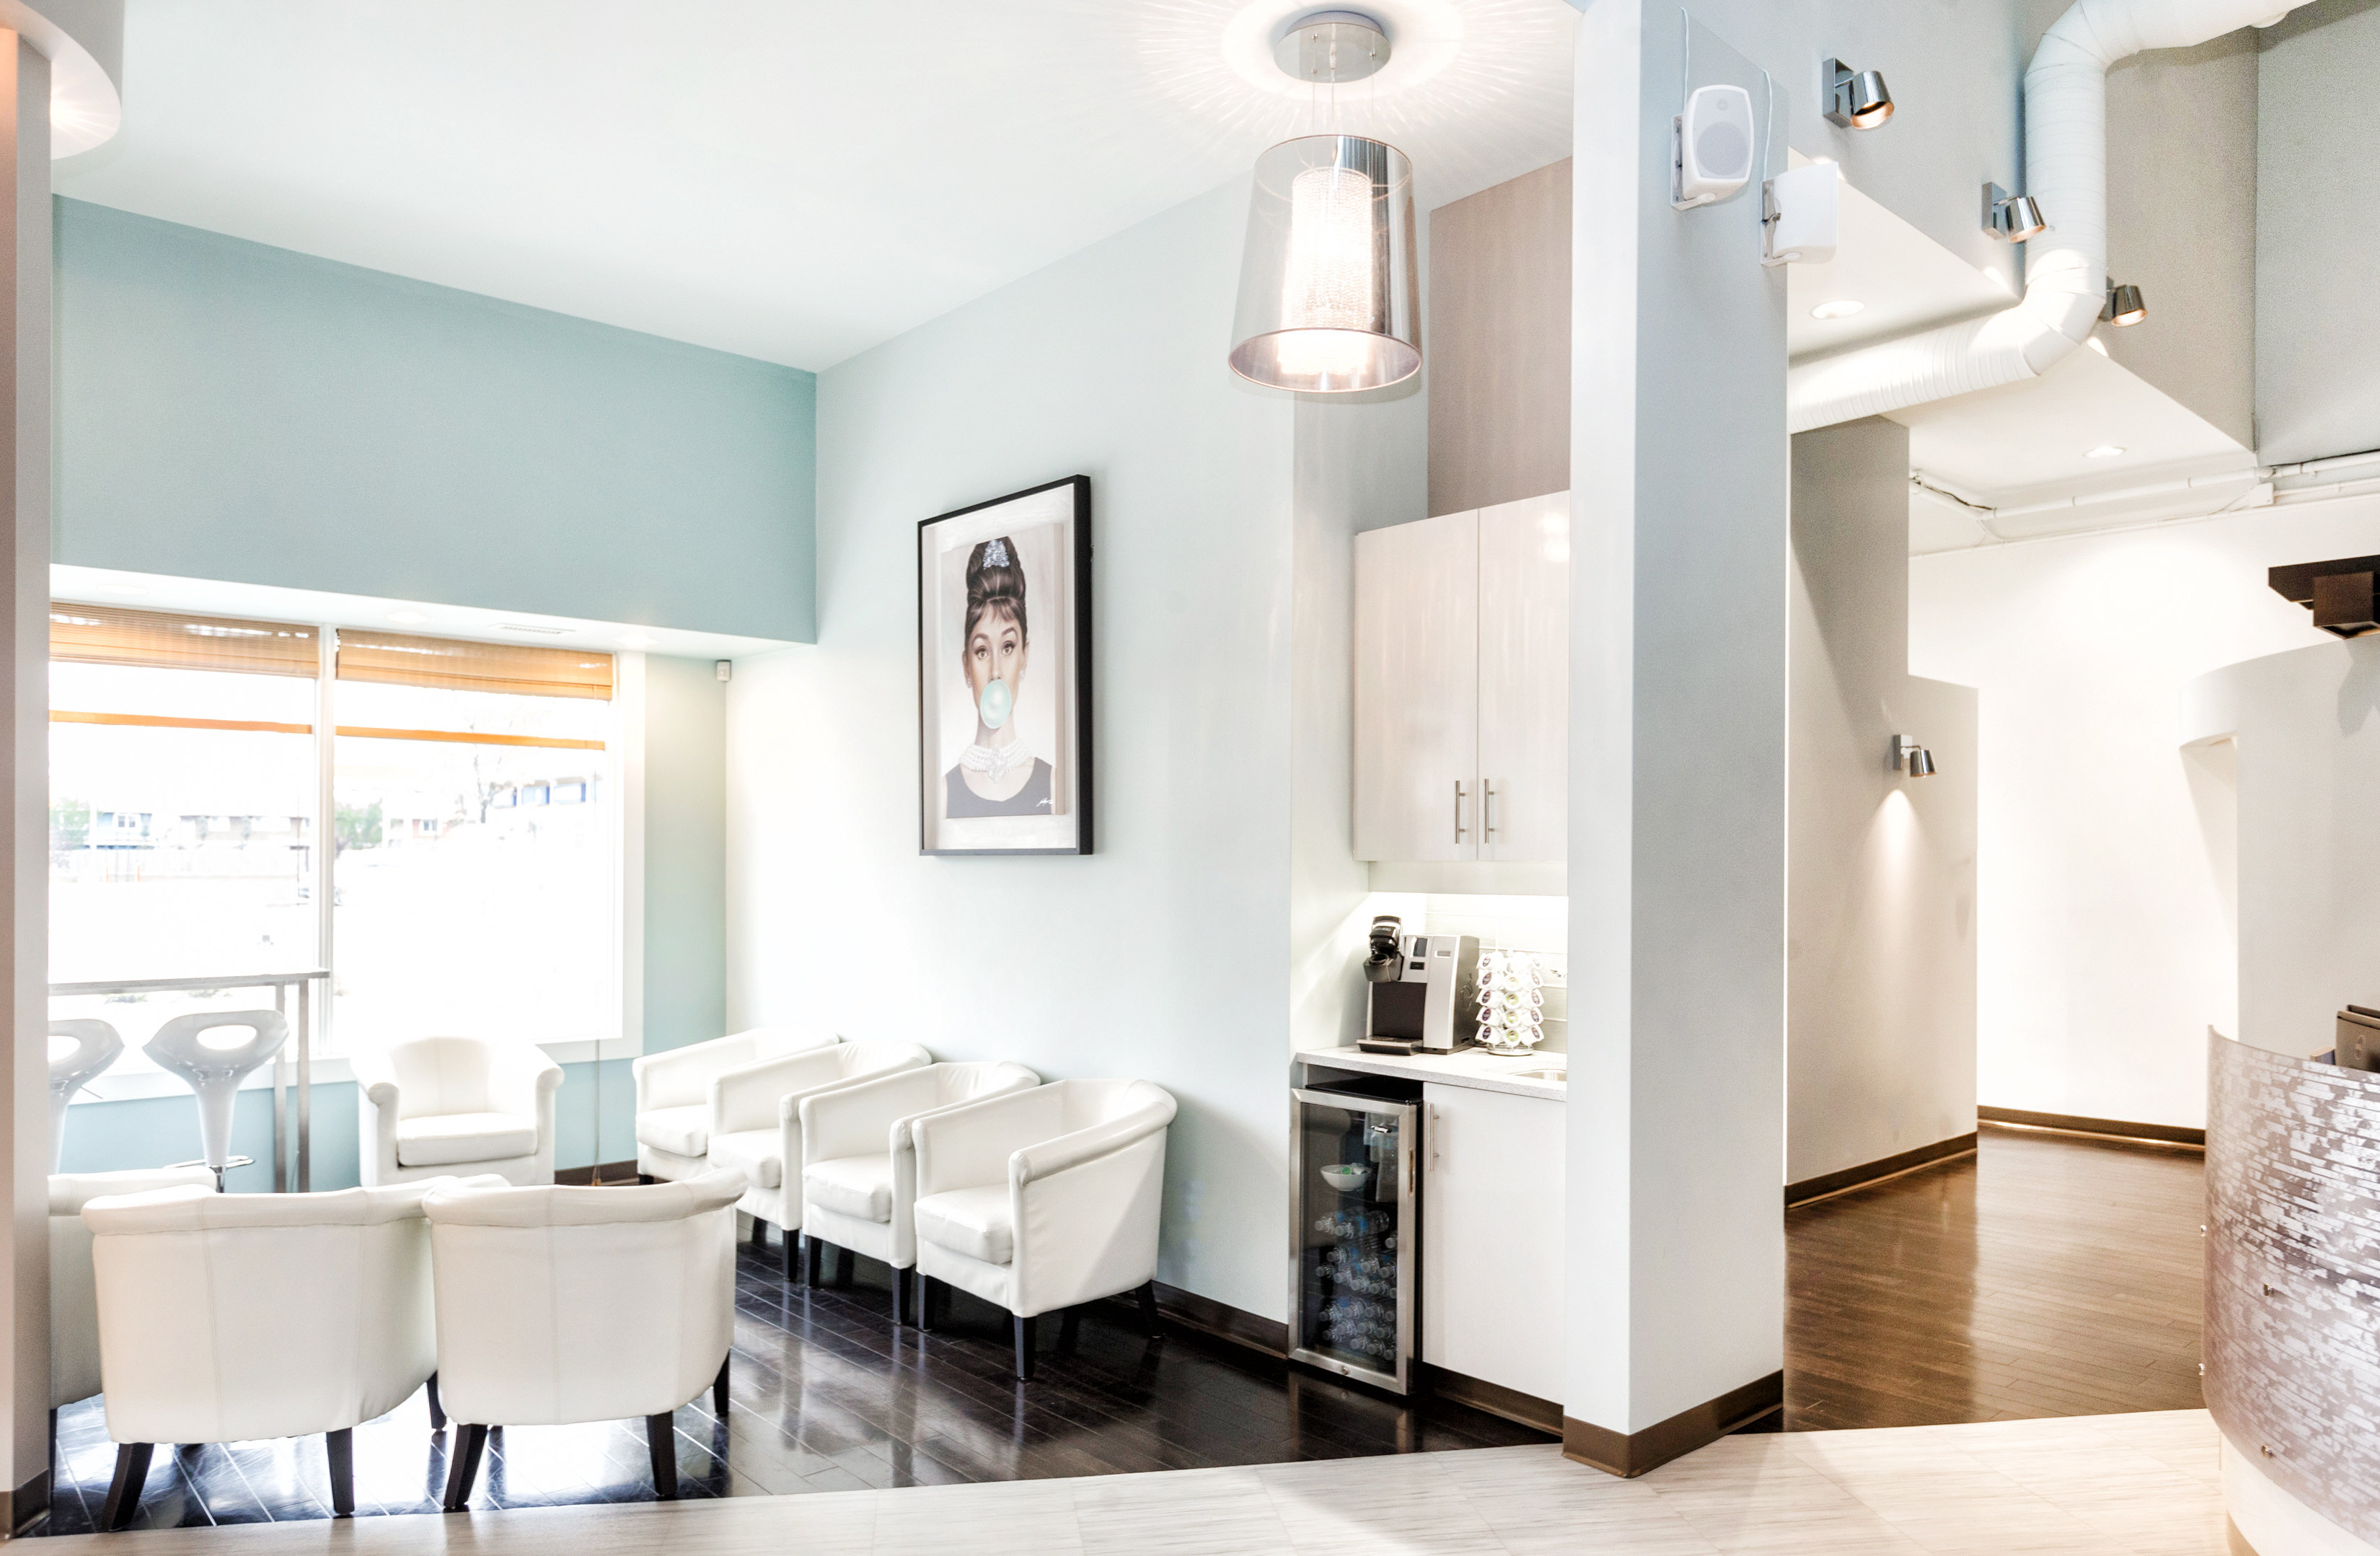 Summerside Dental - Inside Photo